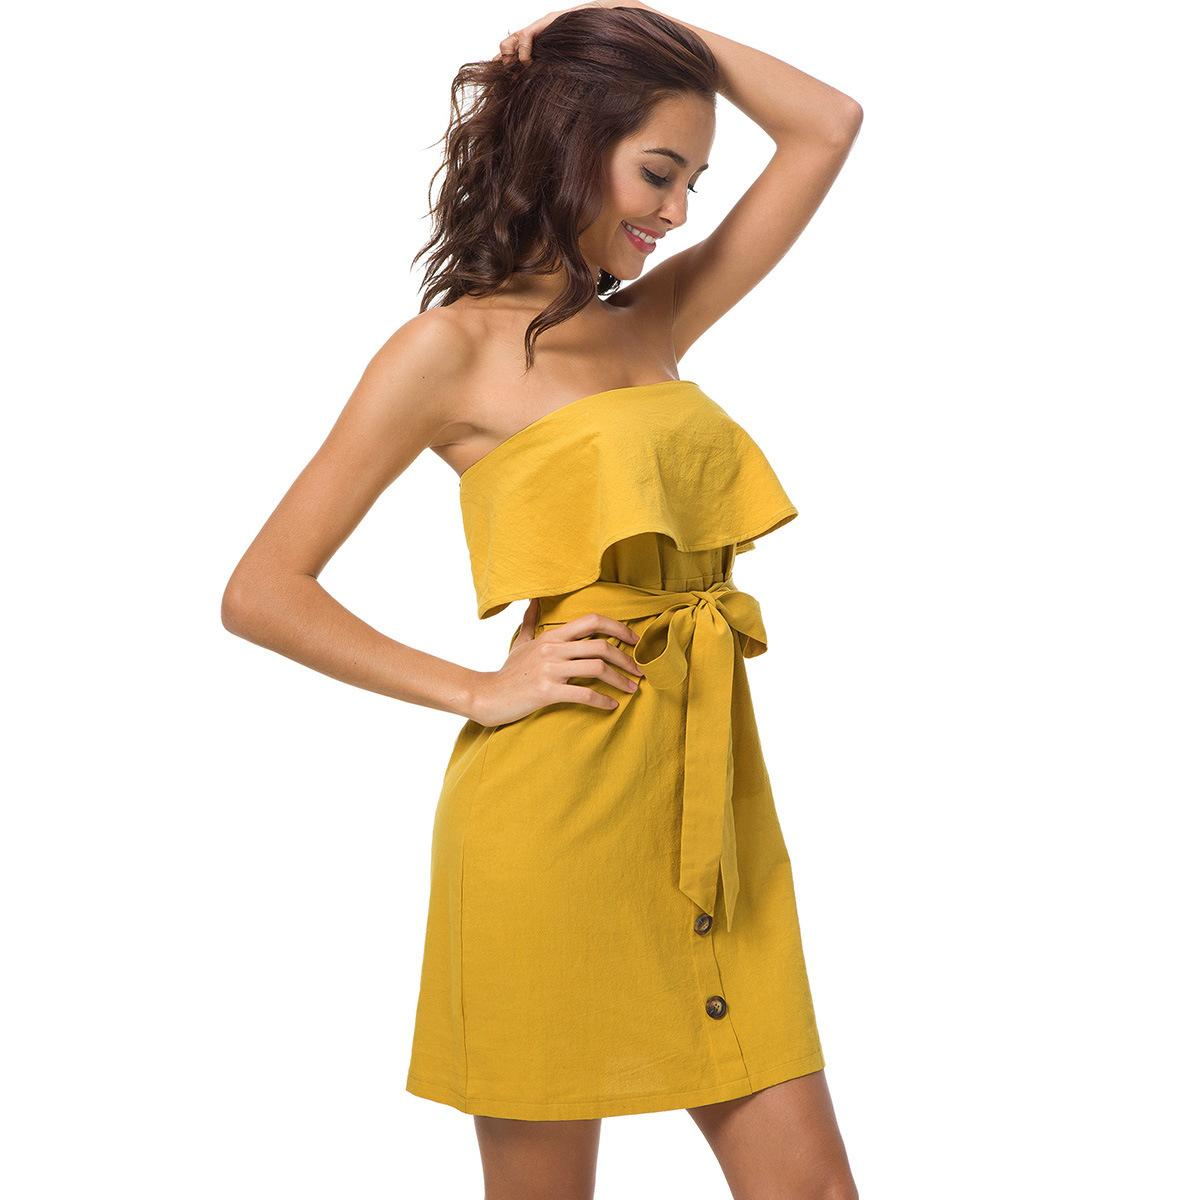 d432f82bebfb2 good quality Summer Dress Women 2019 Sexy New Cotton And Linen Bandage  Dresses Ruffles Wrapped Chest Women s Summer Yellow Midi Dress